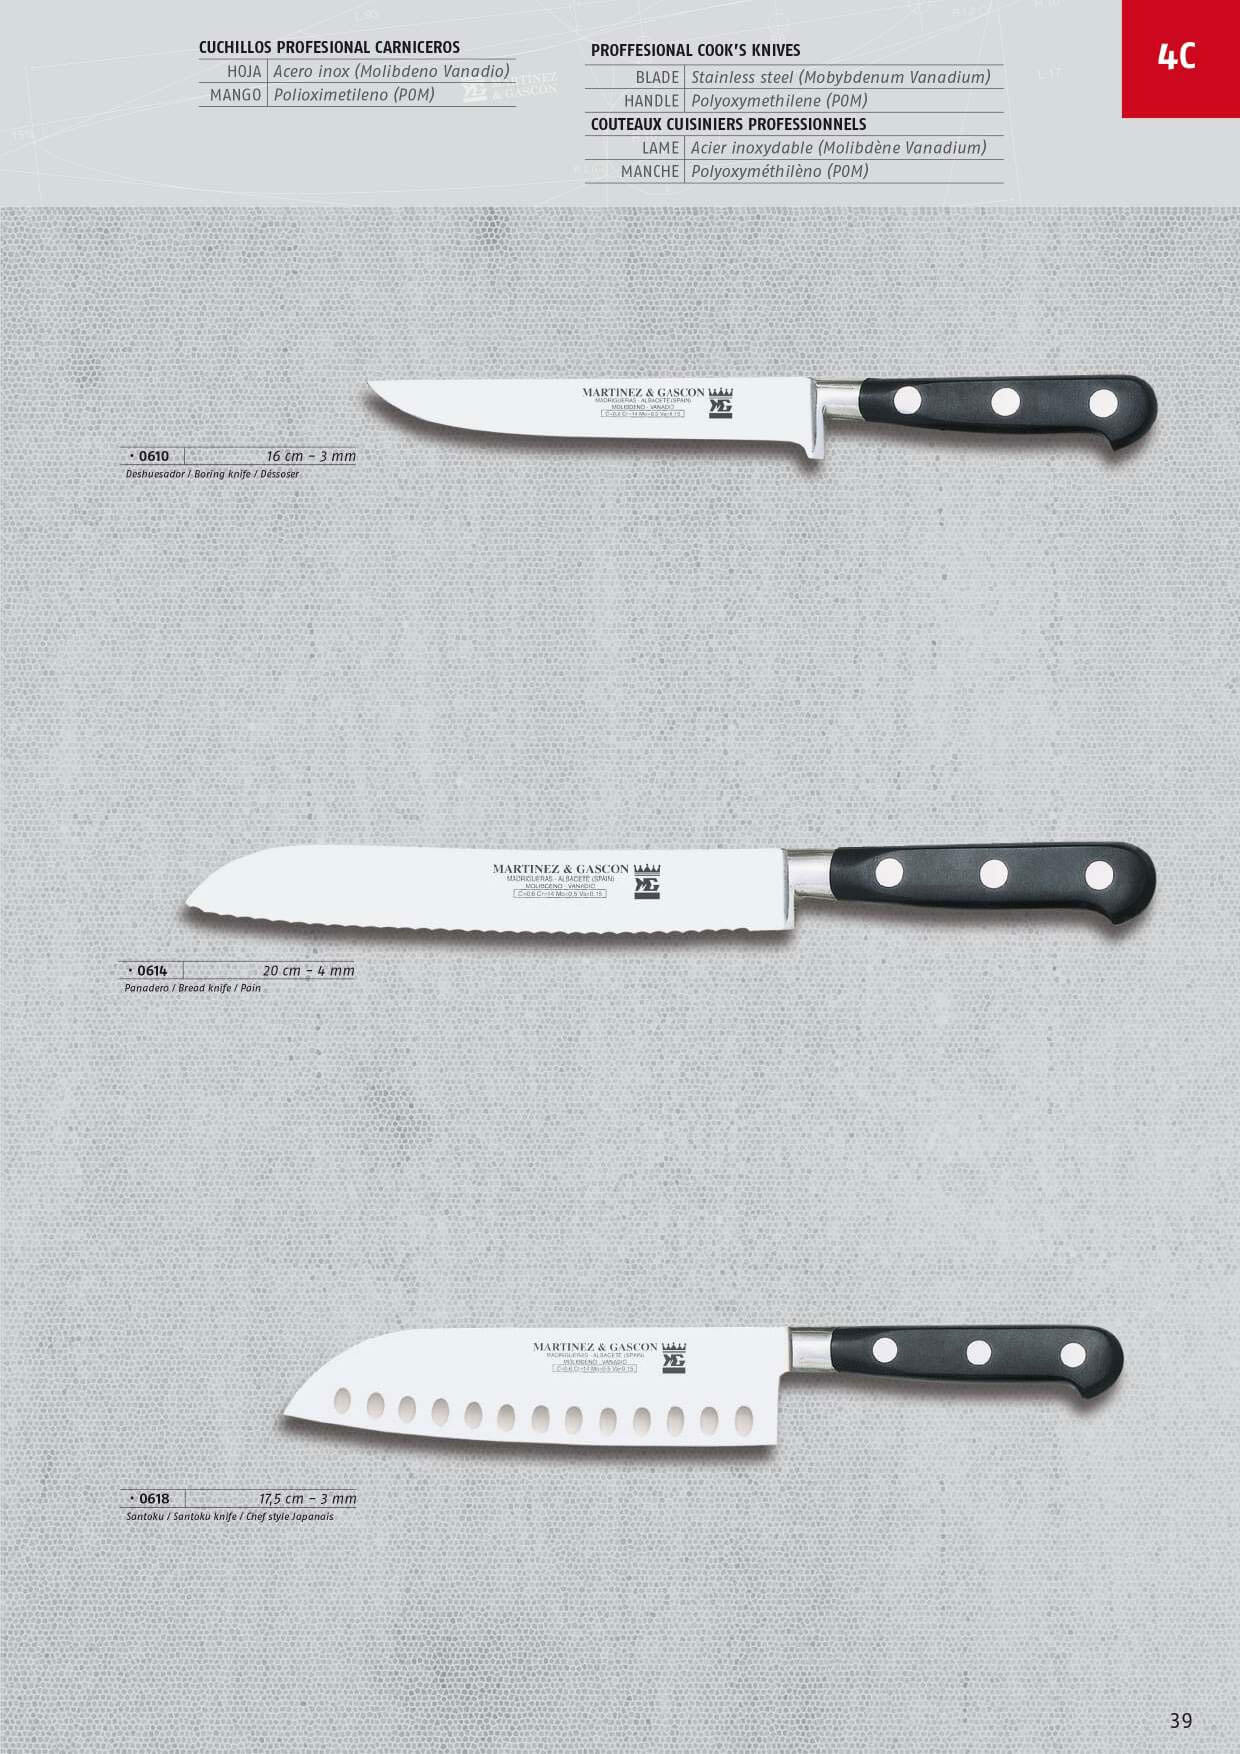 COOK KNIVES FORGED - Martinez & Gascon